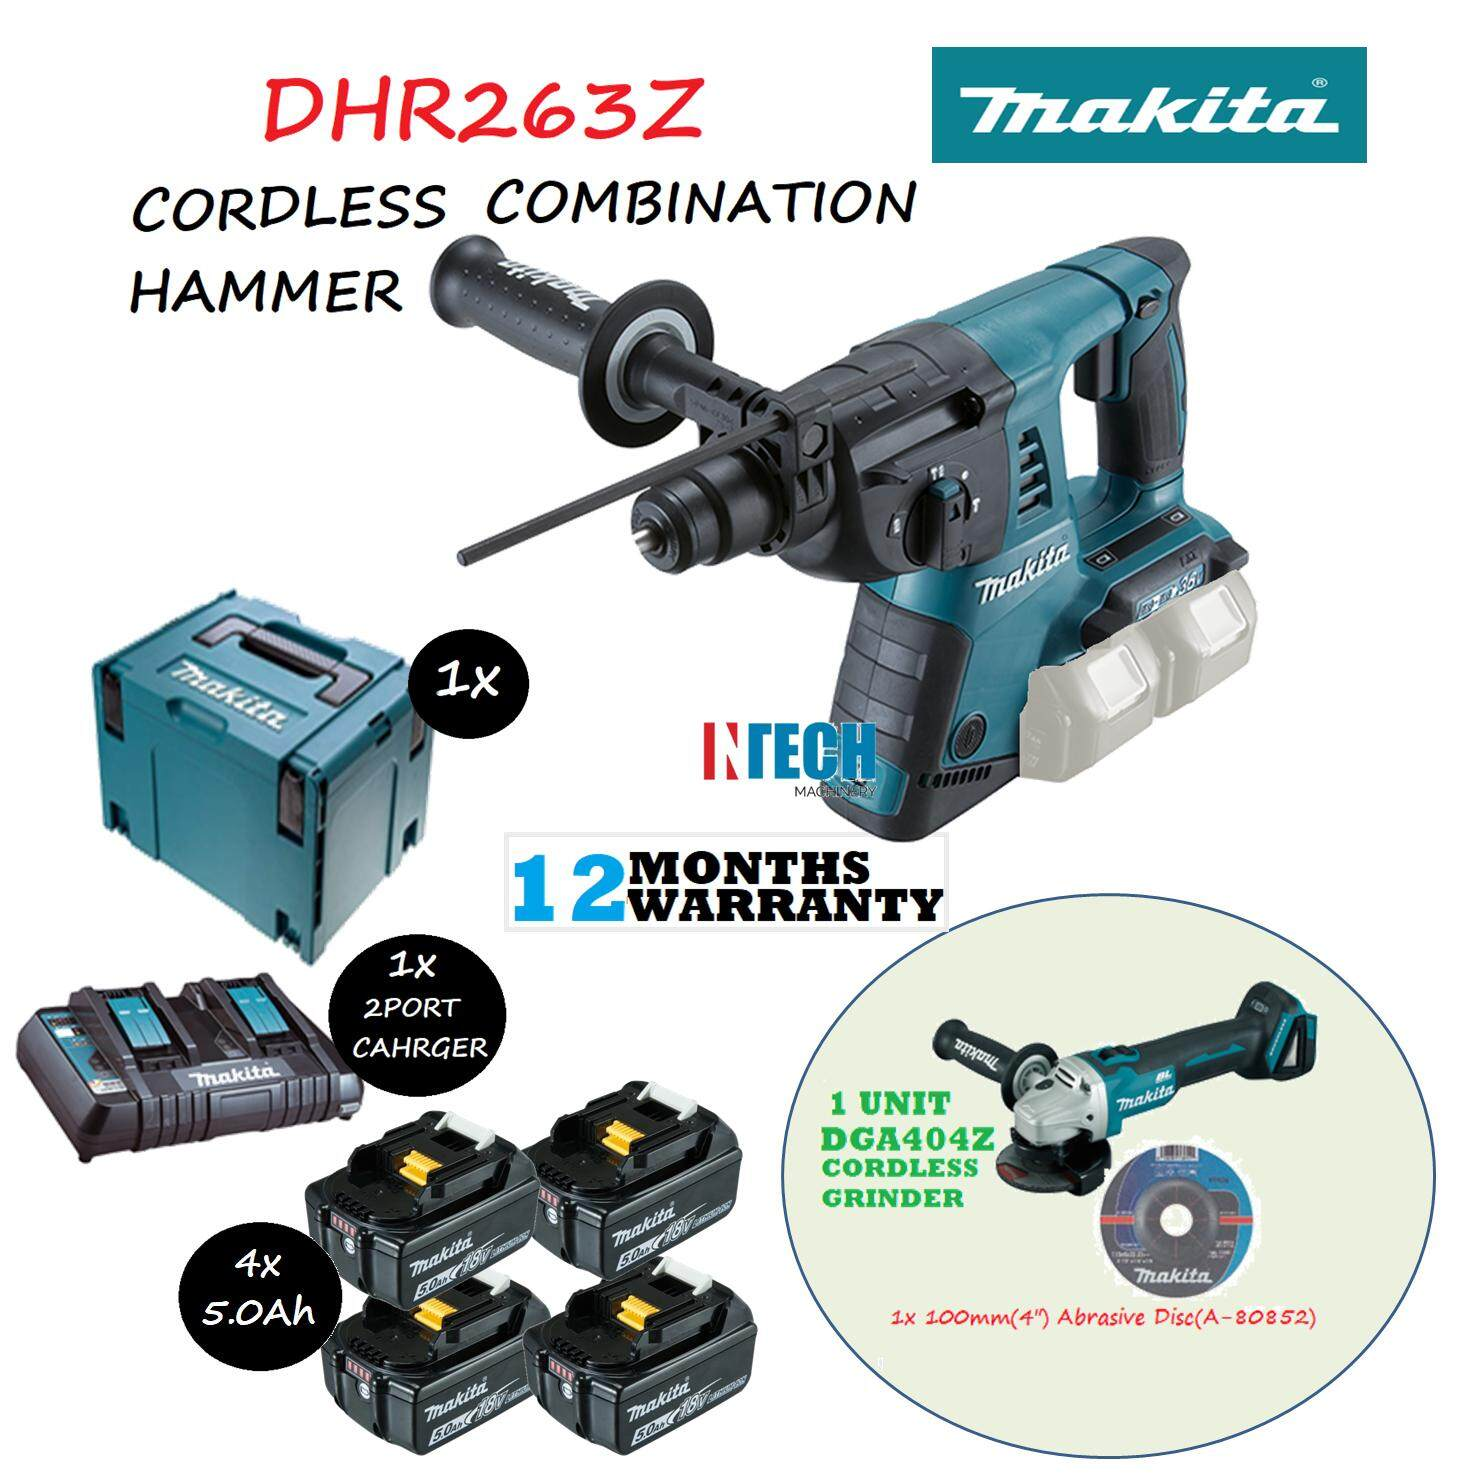 MAKITA DHR263Z CORDLESS COMBINATION HAMMER C/W 4x5.0AH BATTERY+1x2PORT MULTI FAST CHARGER+MAKPAC CONNECTOR CASE